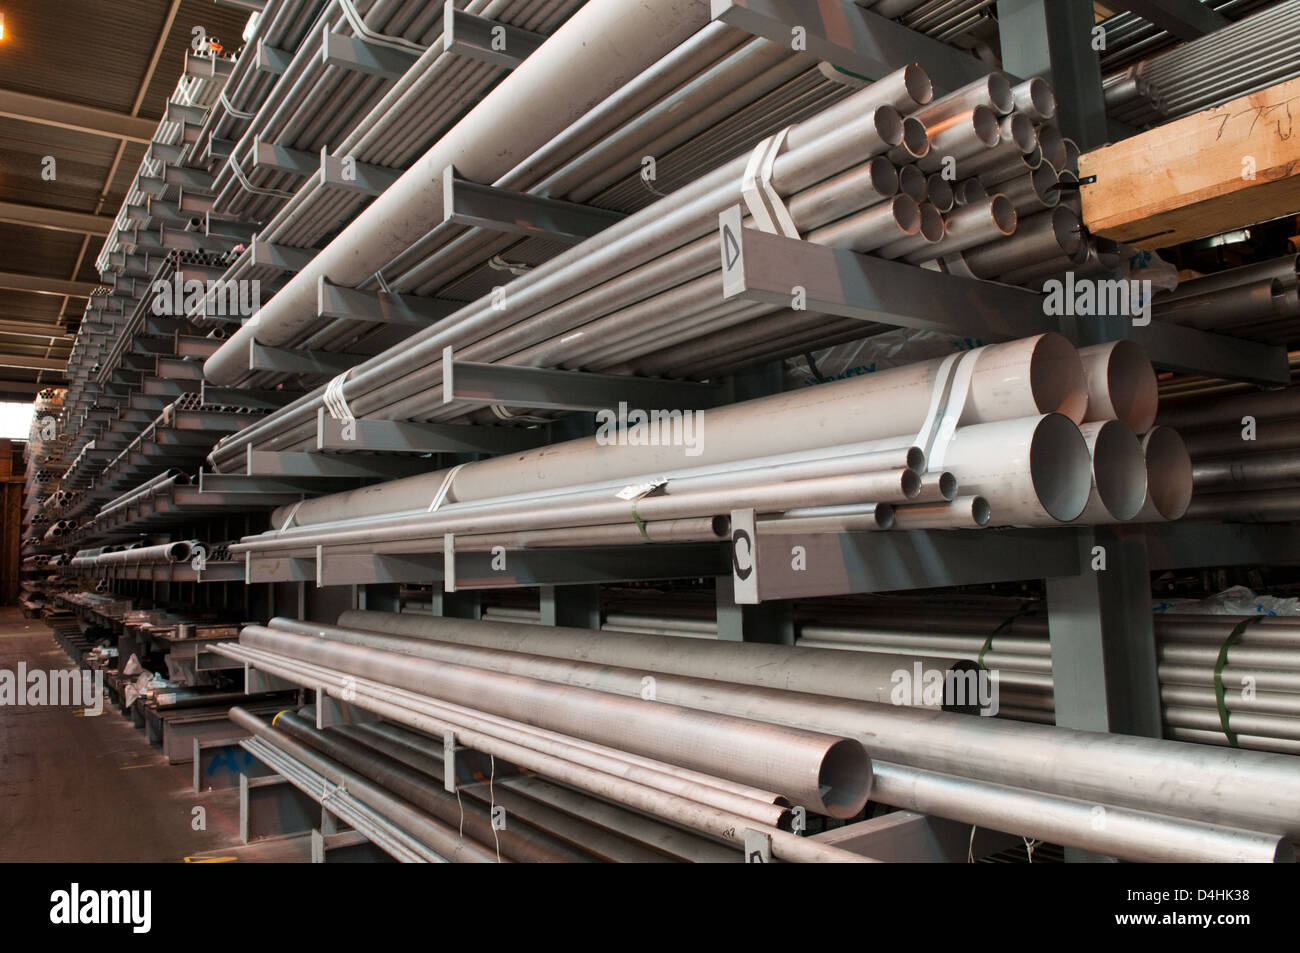 Steel tubes stacked in a warehouse at a steel stock holders in the West Midlands, UK Stock Photo